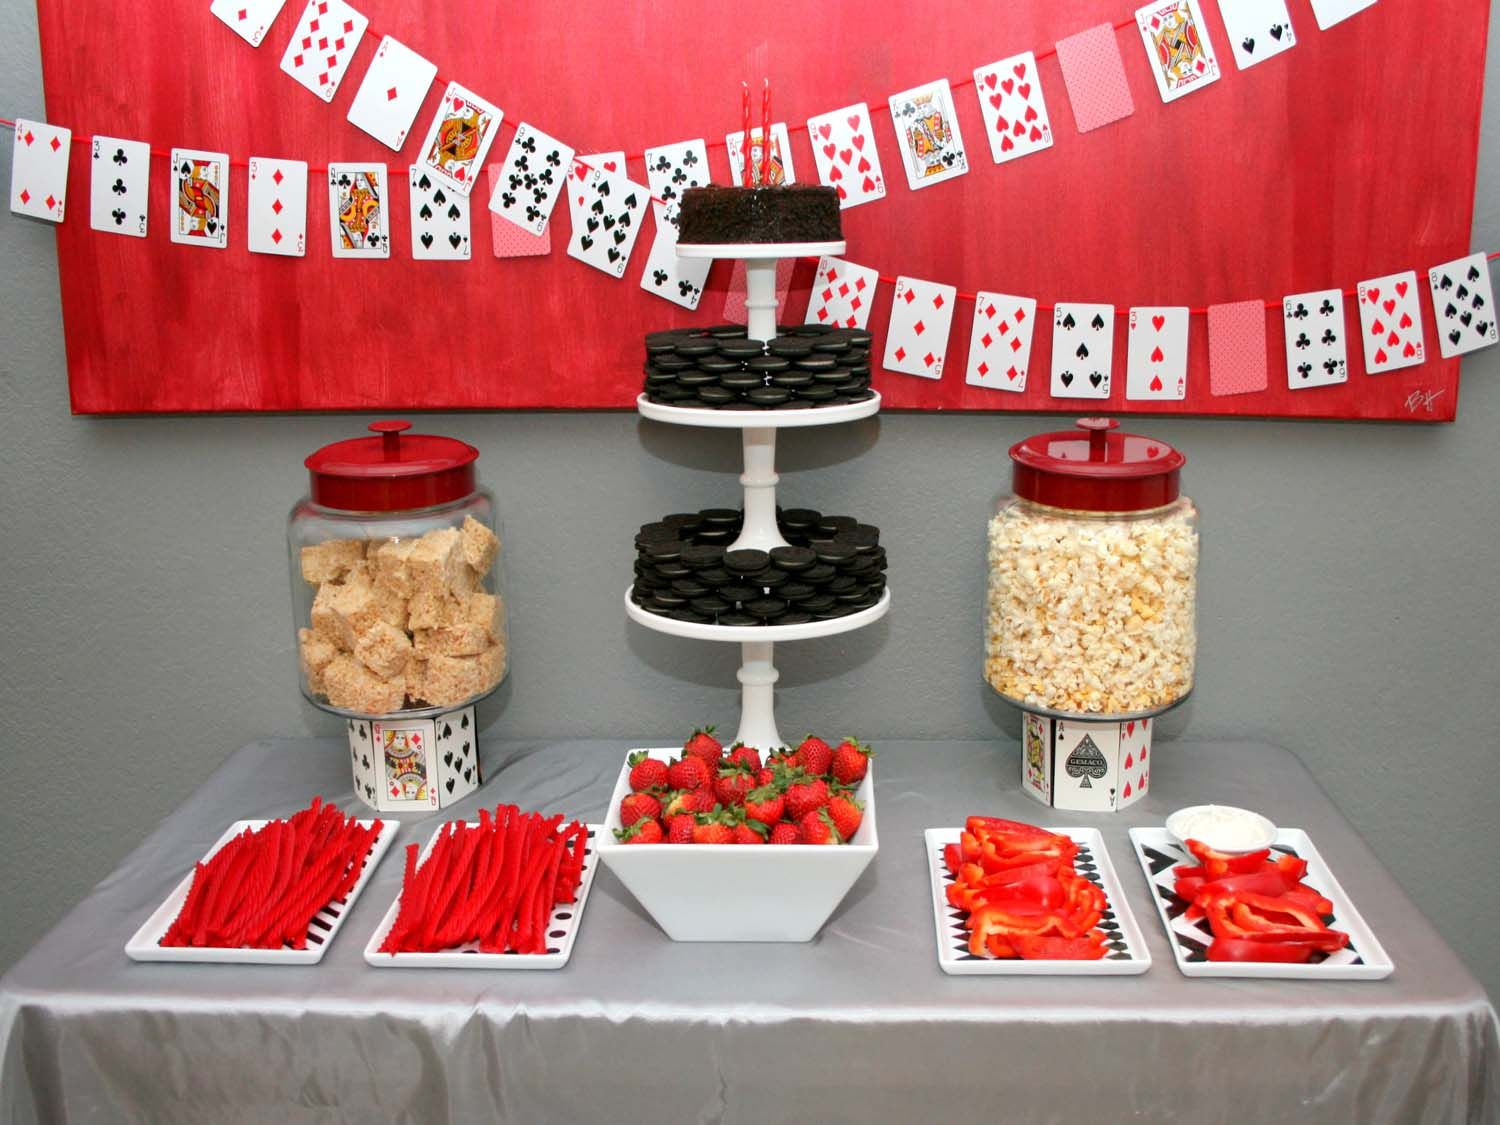 throw a casino party casino party tips - Casino Party Decorations